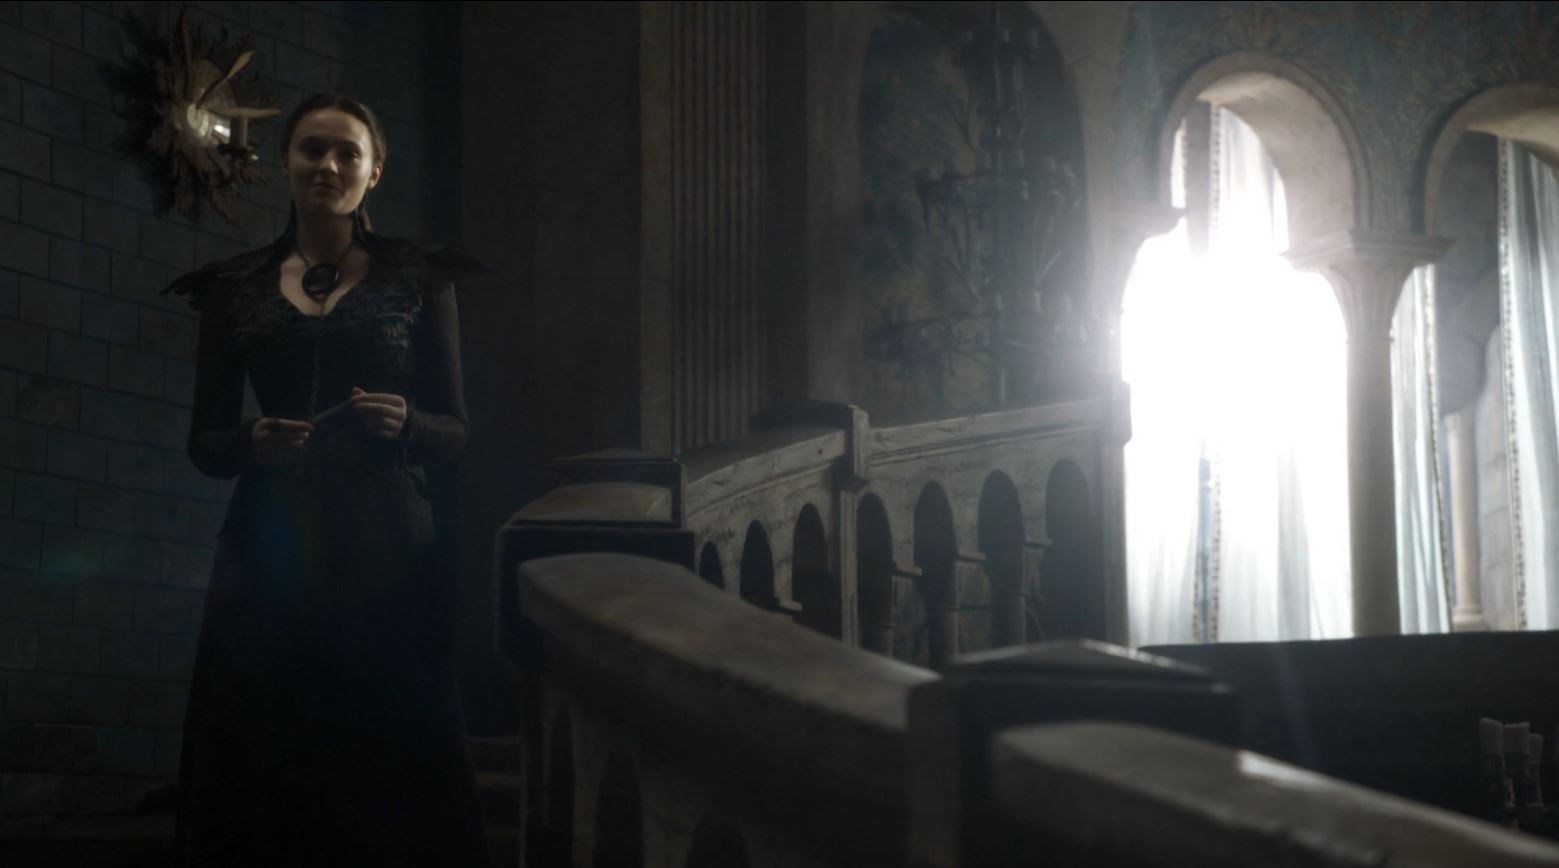 Game of Thrones 'The Mountain and The Viper' Review http://scifiempire.net Game of Thrones - Sansa in corset dress hot